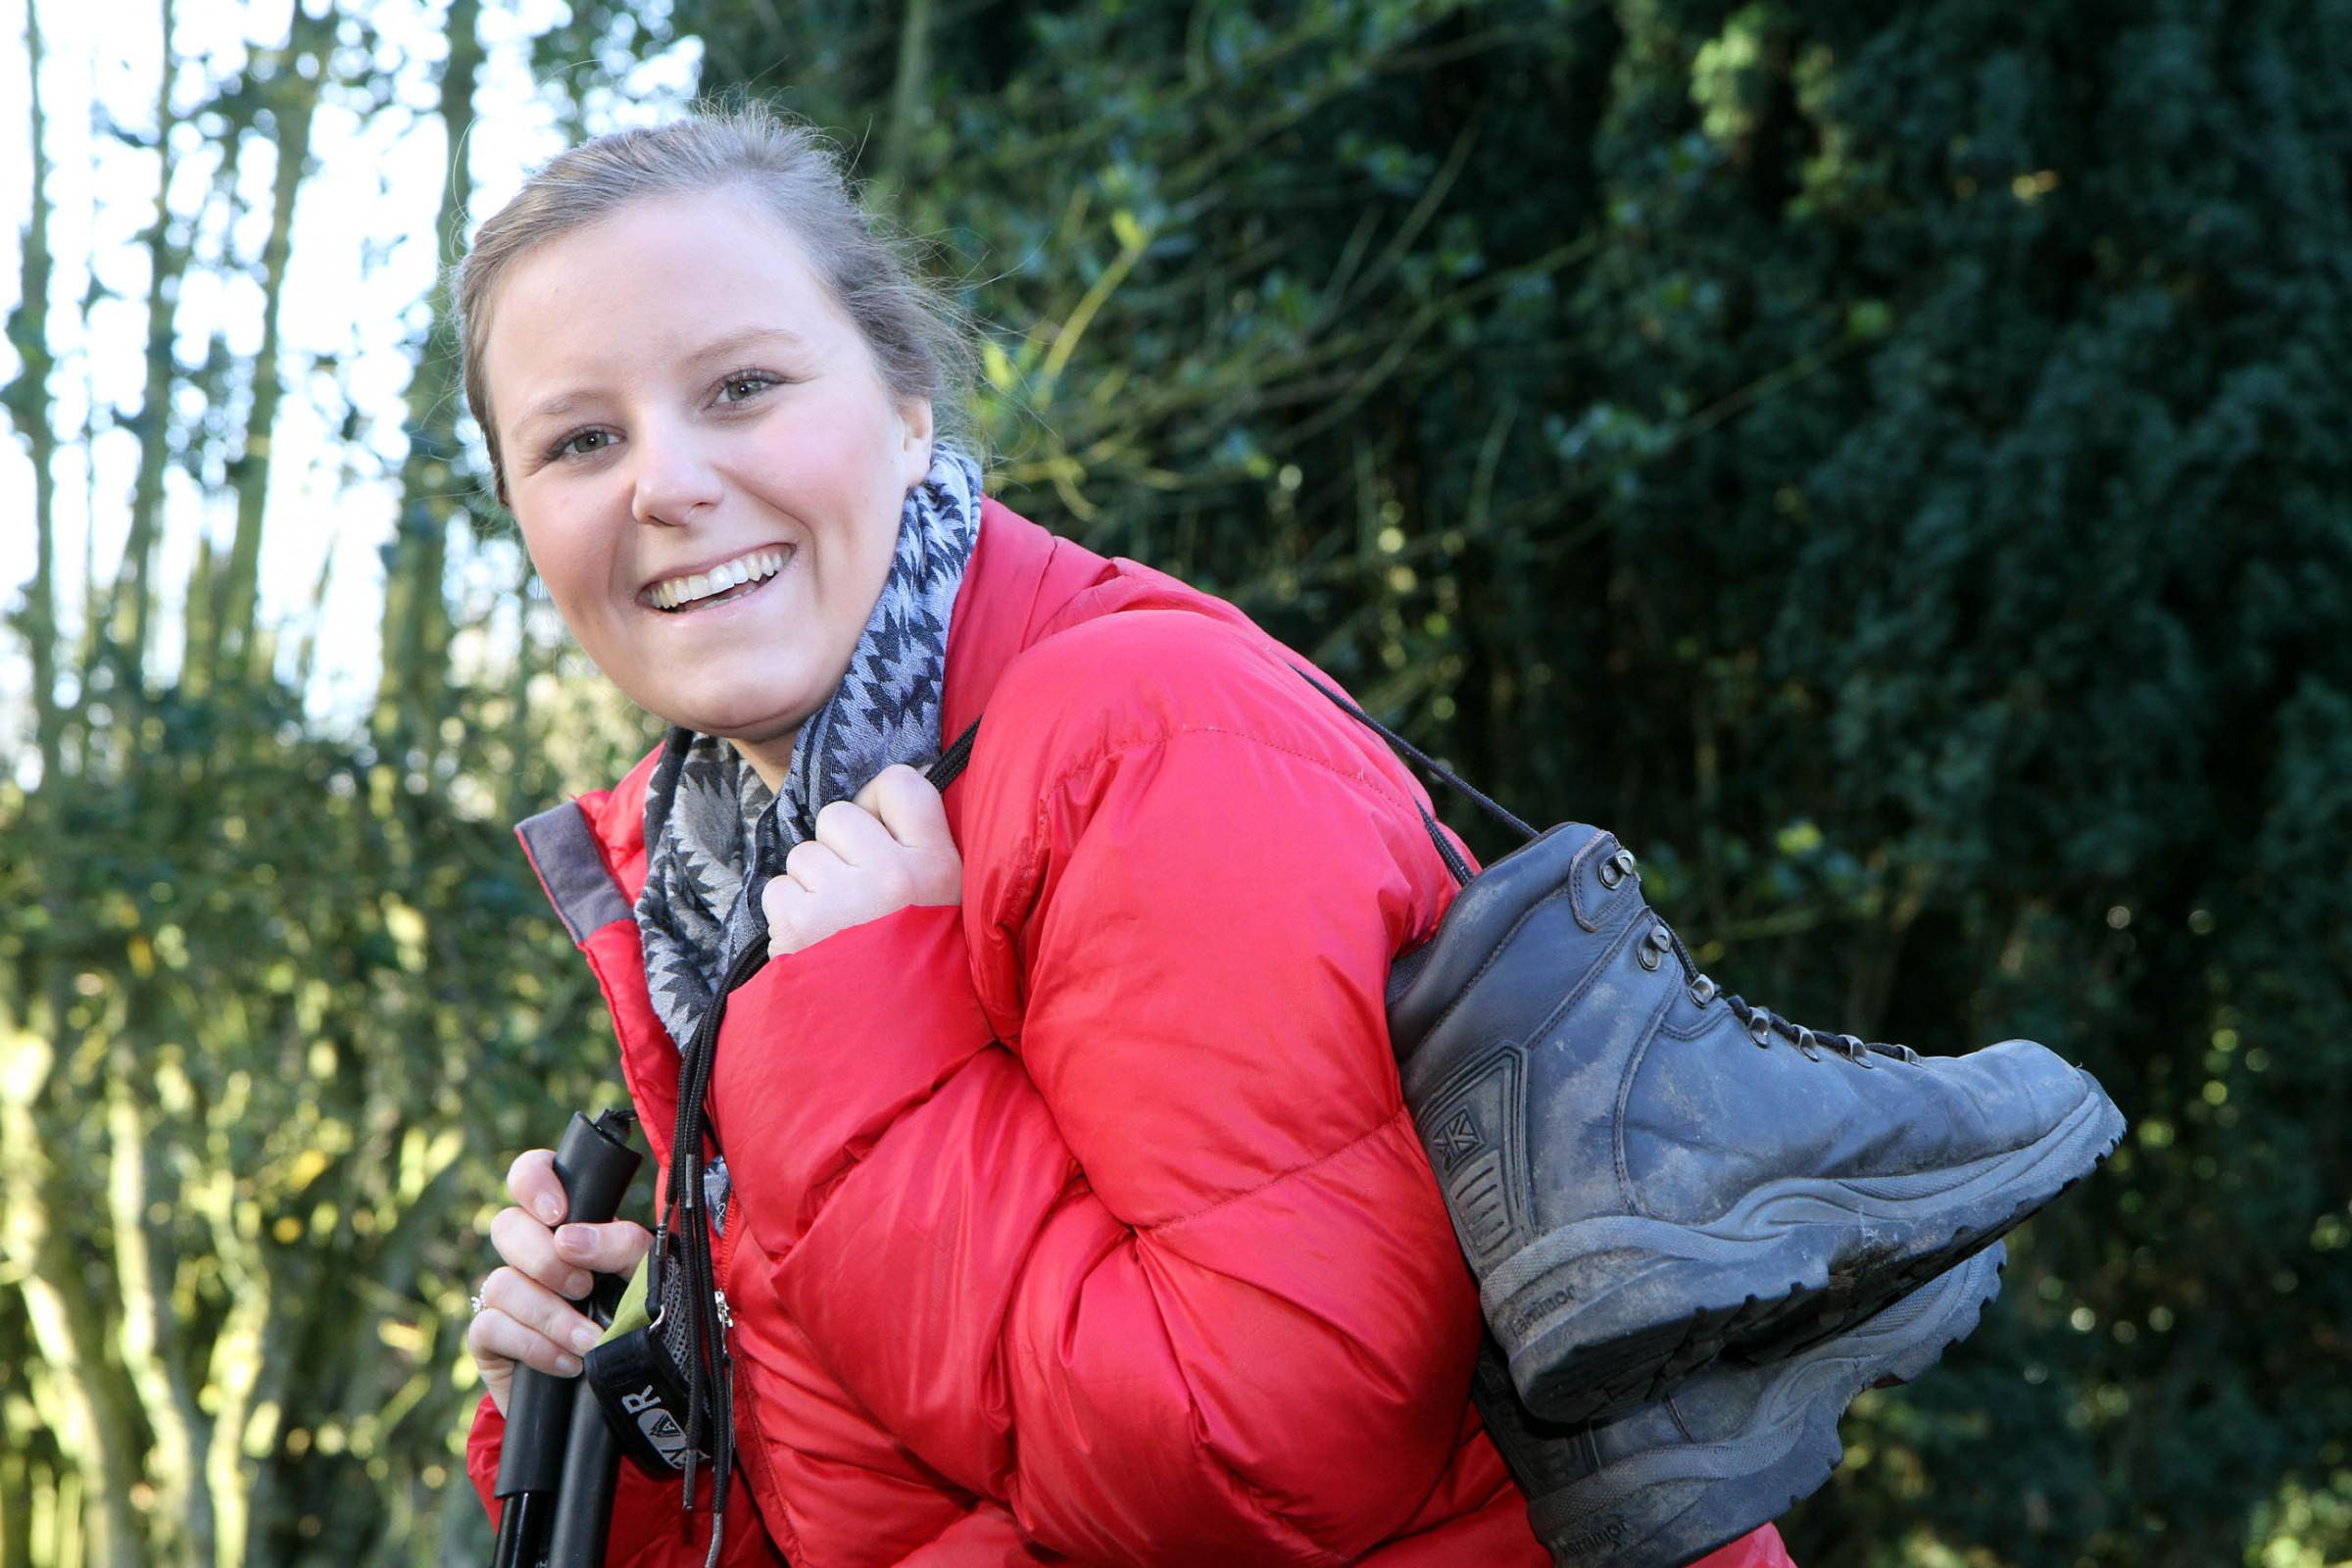 Manorlands fundraiser, Hayley Ibbotson, is appealing for more people to sign up to the Nepal trek in aid of Manorlands